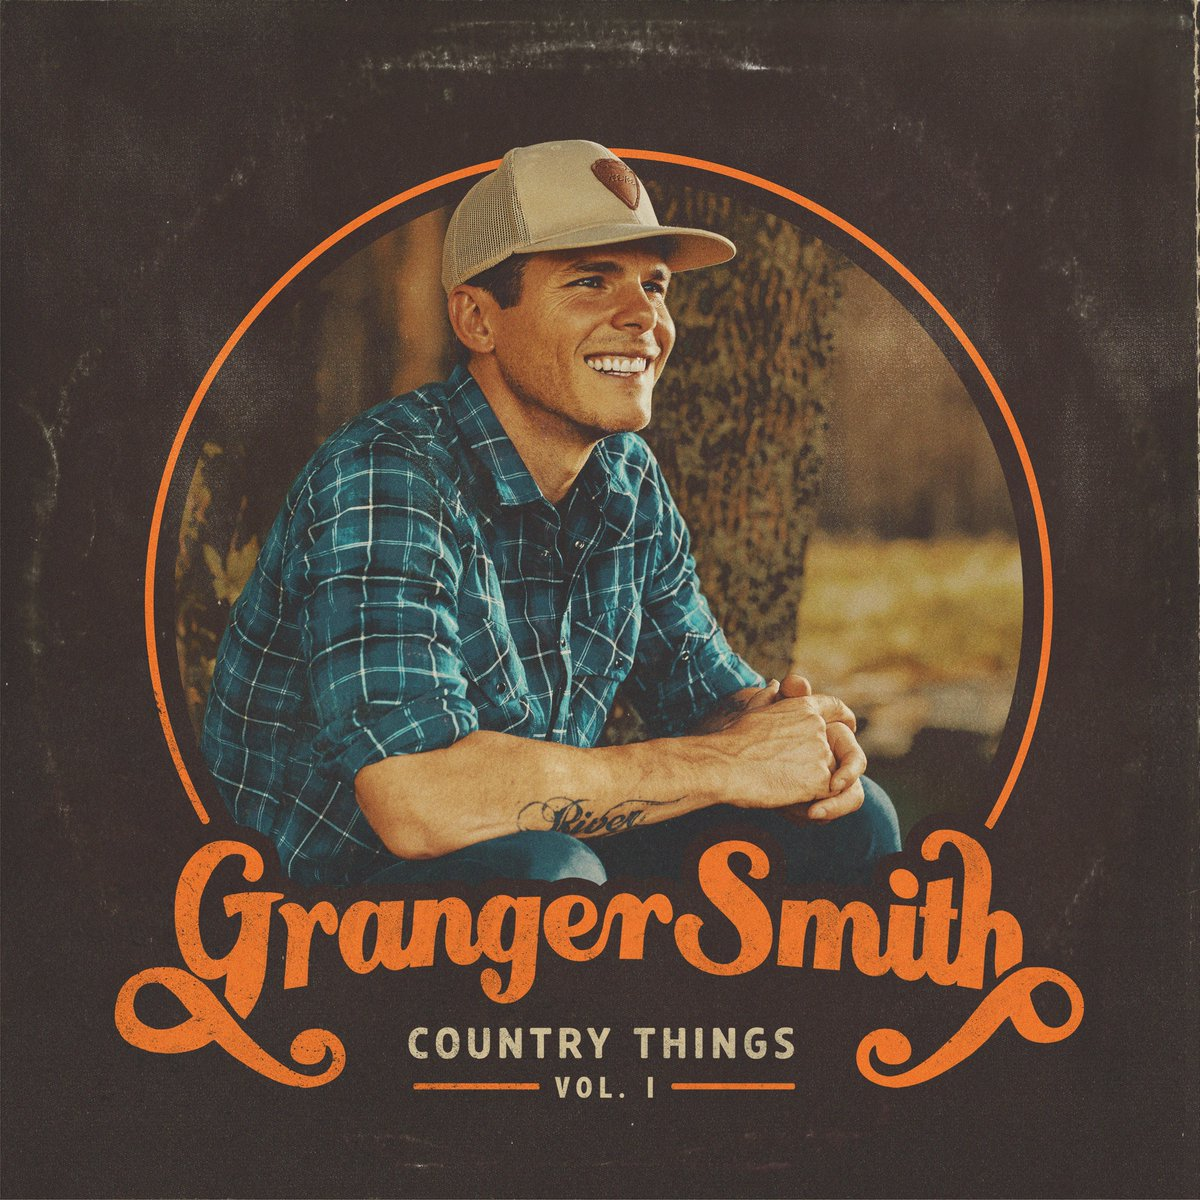 """#YEEYEE‼️🤠 Today @grangersmith releases his newest album """"Country Things Vol. 1""""! You're definitely going to need to check this one out 👉 https://t.co/CqfxAiJTCN!! https://t.co/6N304rDHvc"""